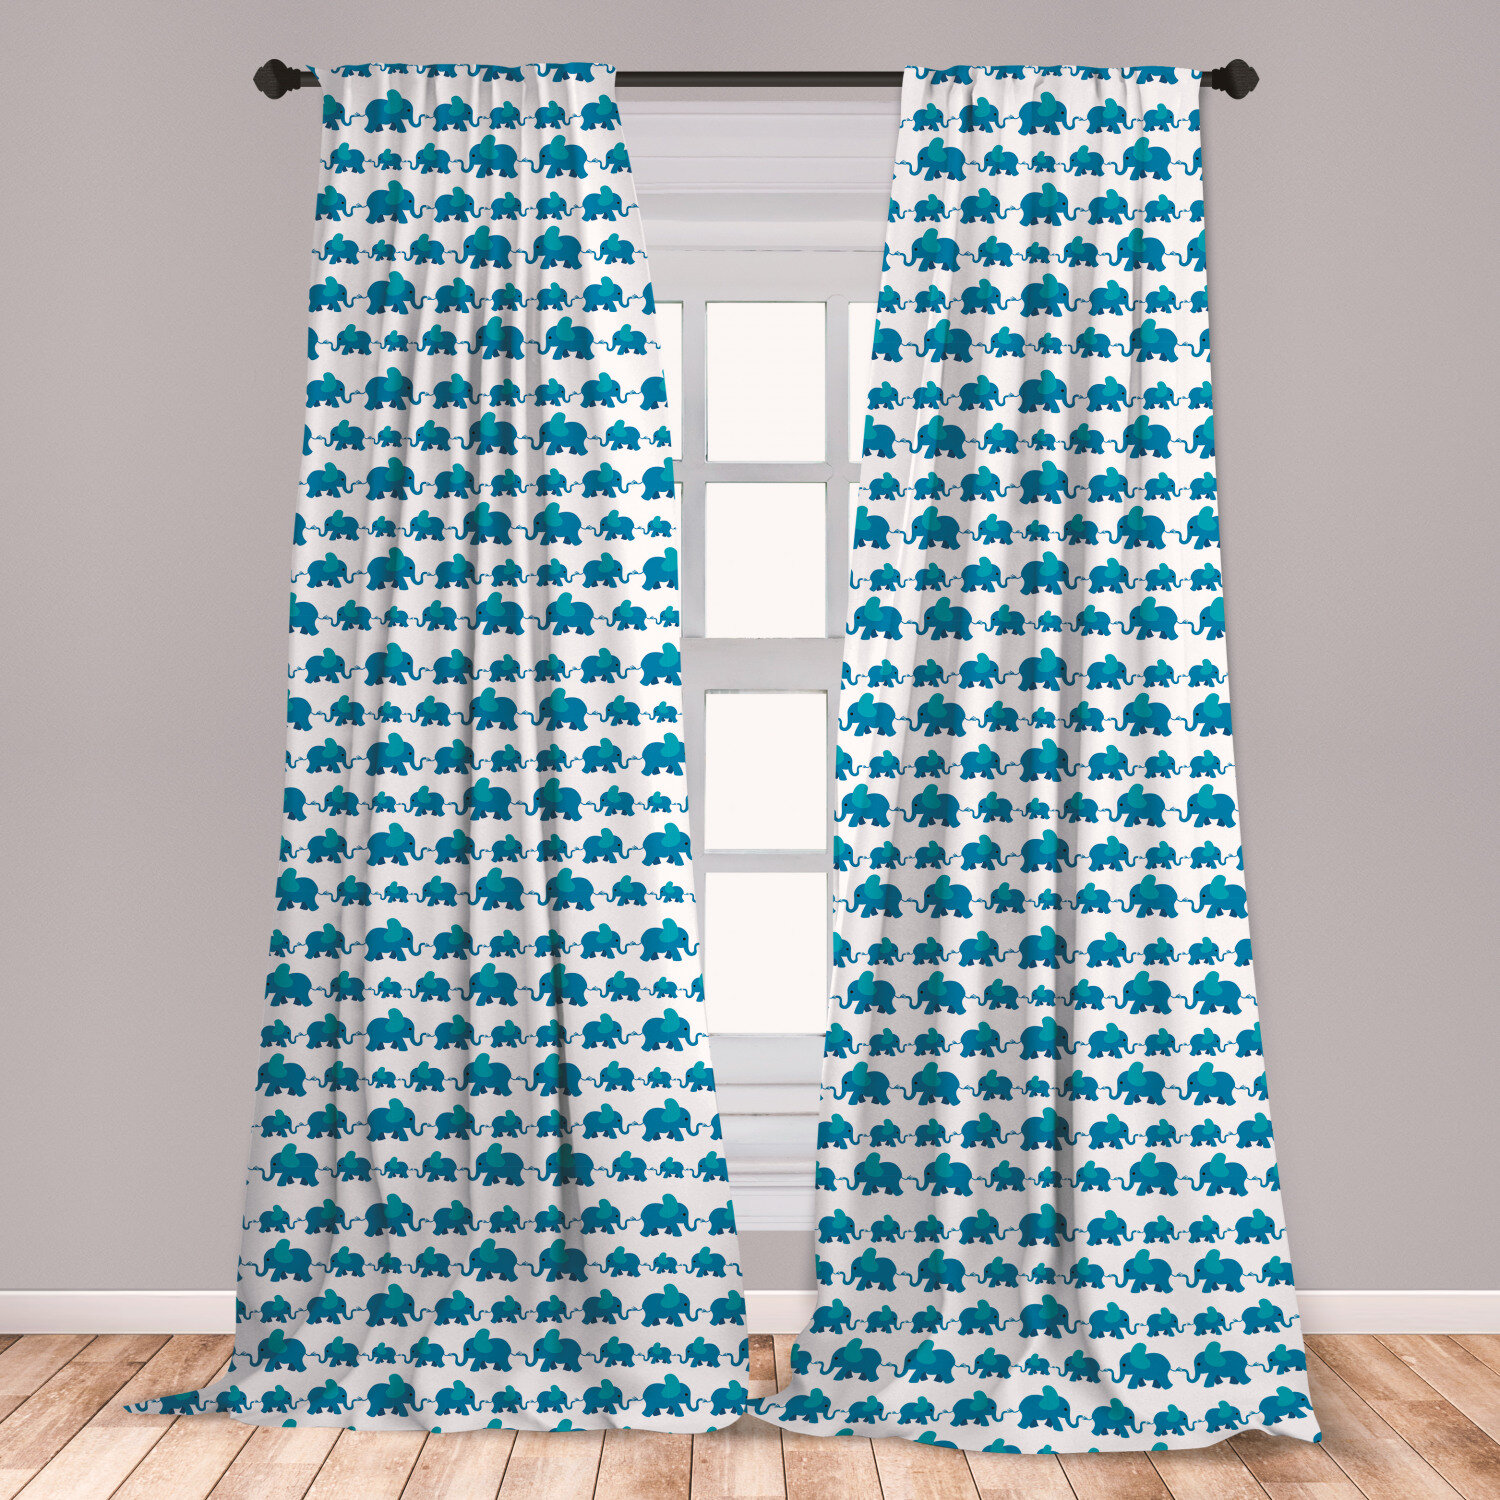 East Urban Home Anerinda Elephant Curtains Children Kids Pattern Nursery Theme Blue Color Animals Horizontal Pattern Window Treatments 2 Panel Set For Living Room Bedroom Decor 56 X 95 Blue White Wayfair